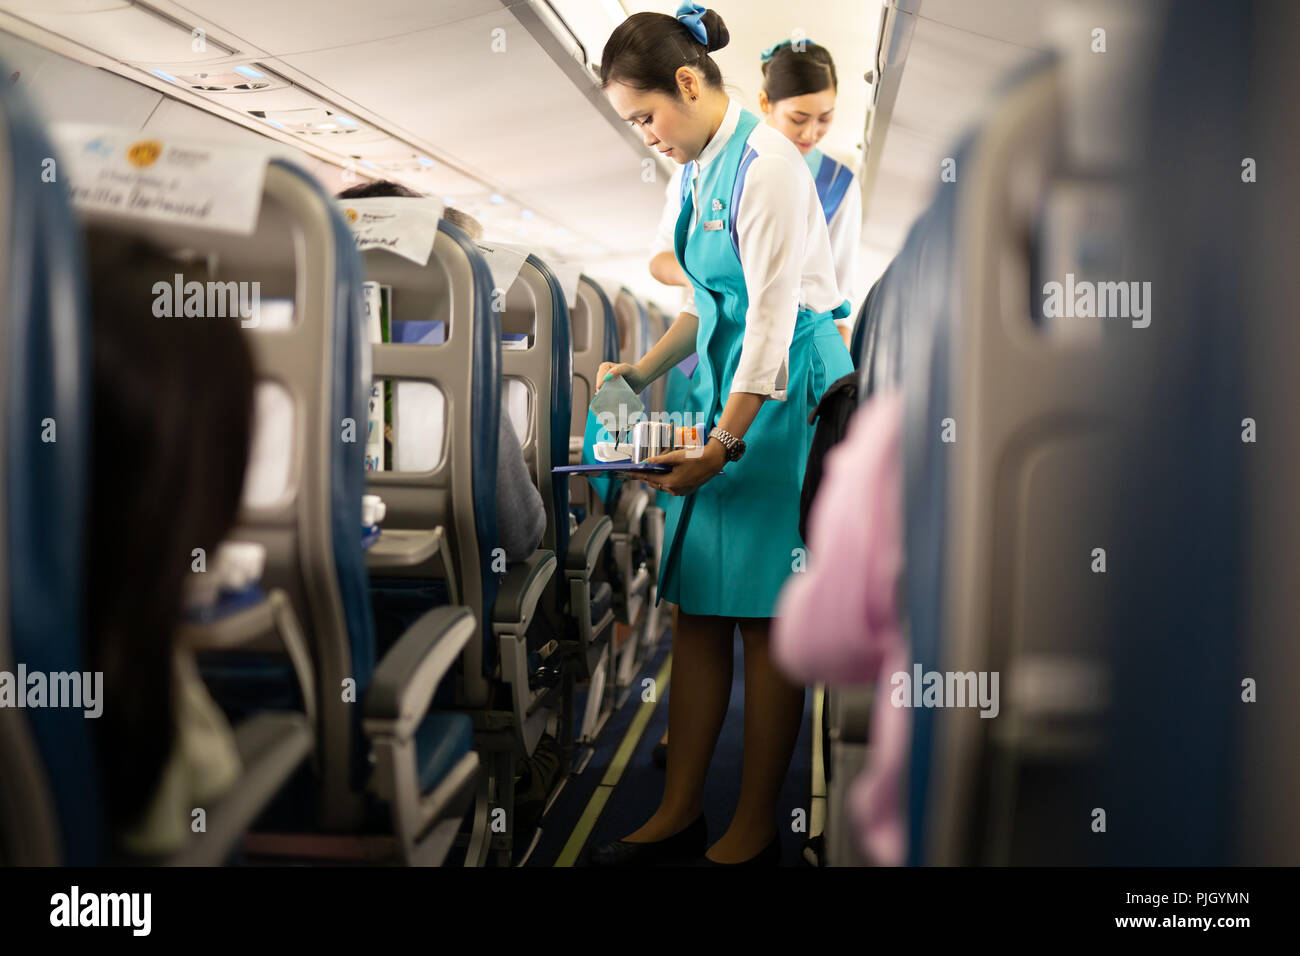 BANGKOK, THAILAND - Aug 27, 2018 - Bangkok Airways flight attendant serve food and drinks to passengers on board - Stock Image